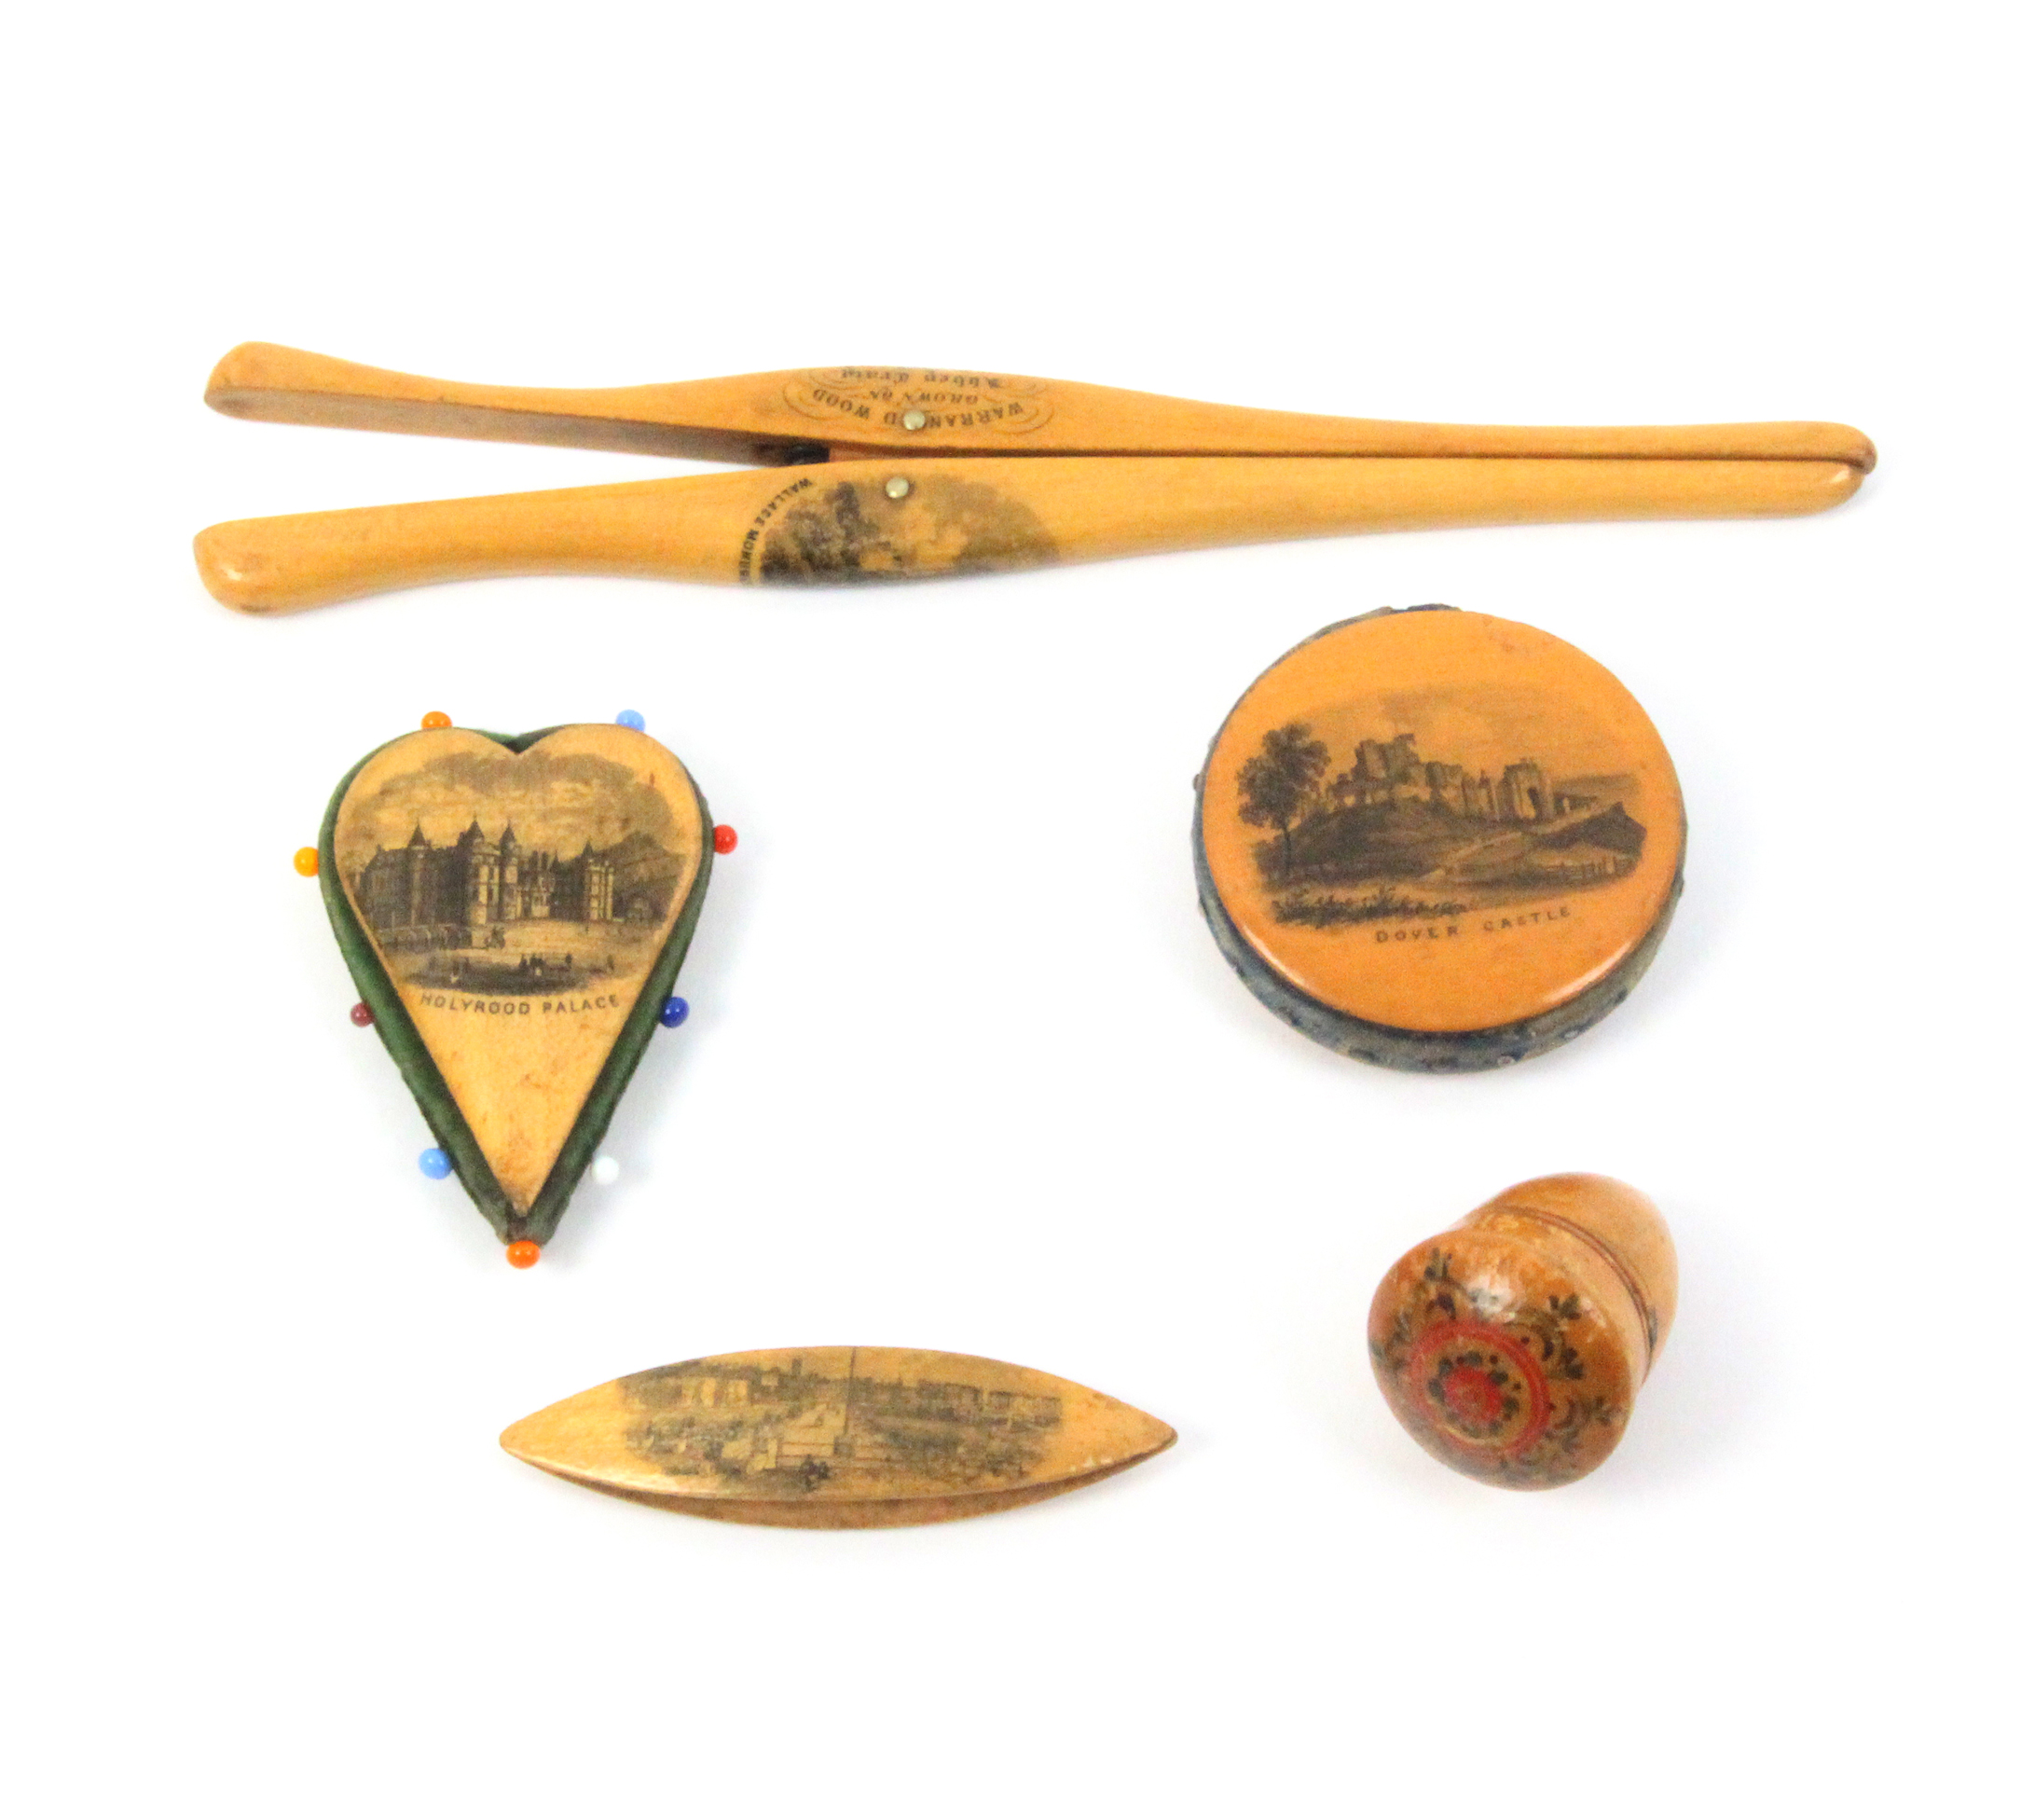 Mauchline ware - sewing - four pieces and another comprising a small shuttle (Margate From The